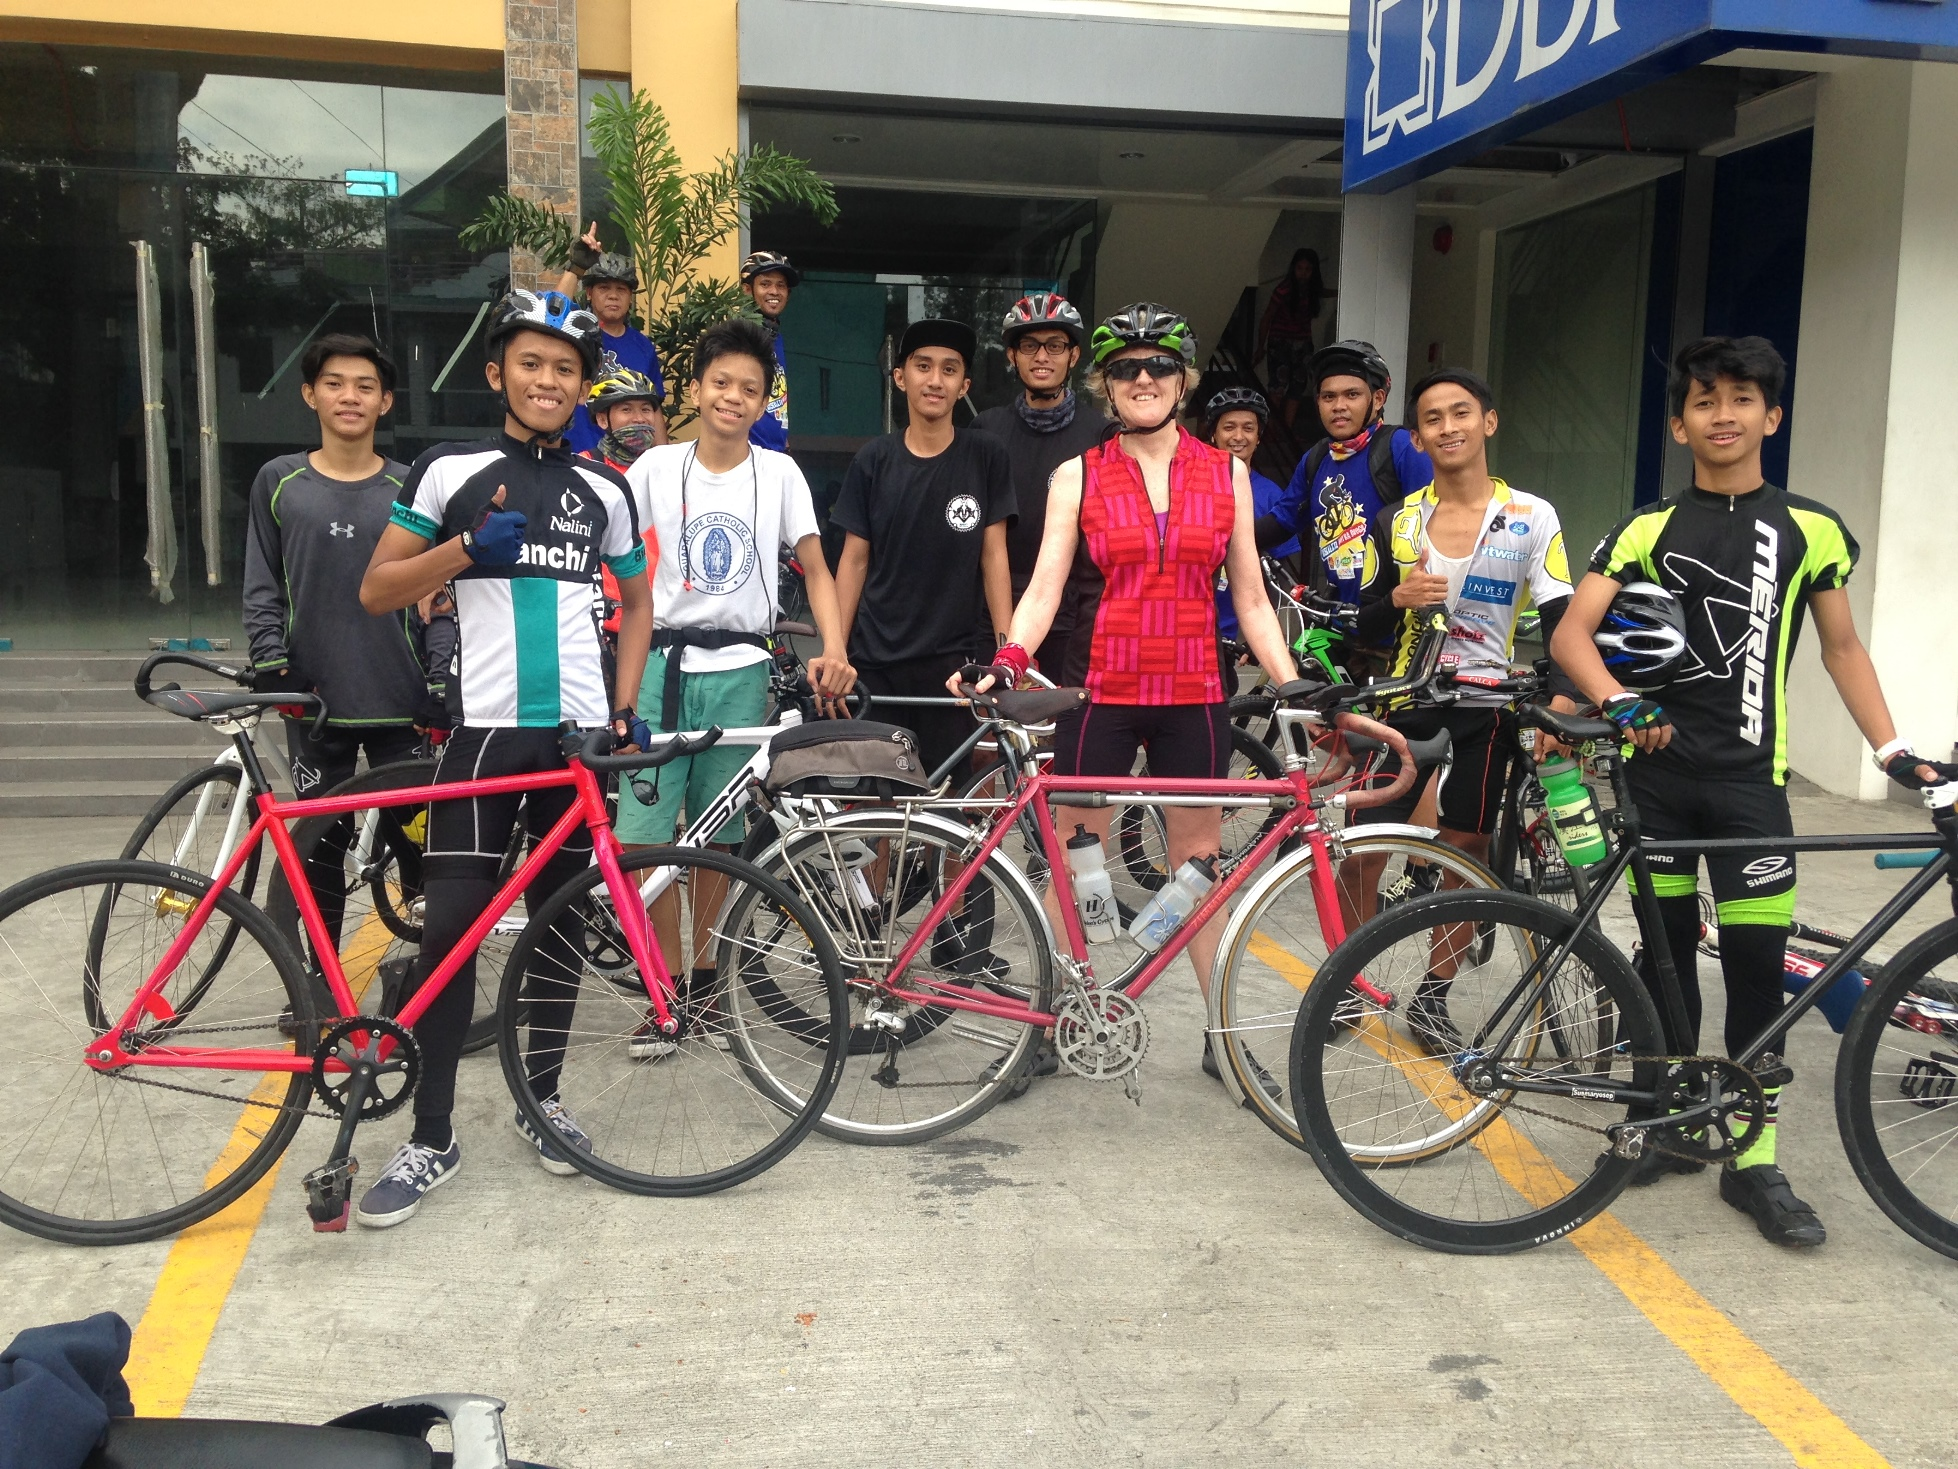 Antipolo with young guys on fixies